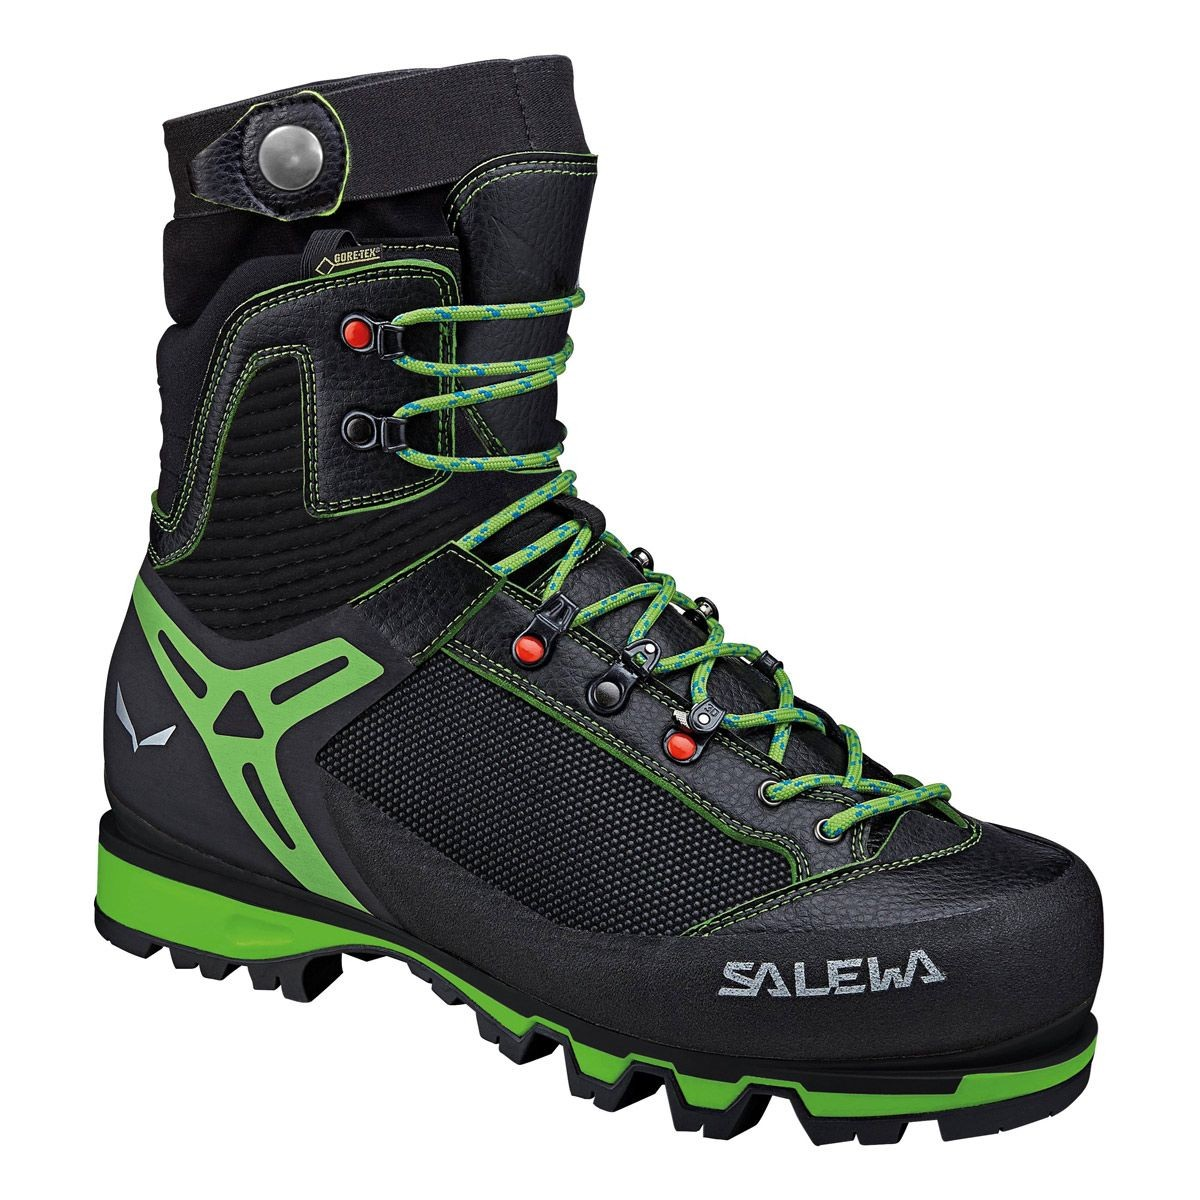 Salewa Vultur Vertical GTX. Bota simple moderna, con flexión de tobillo para escalada